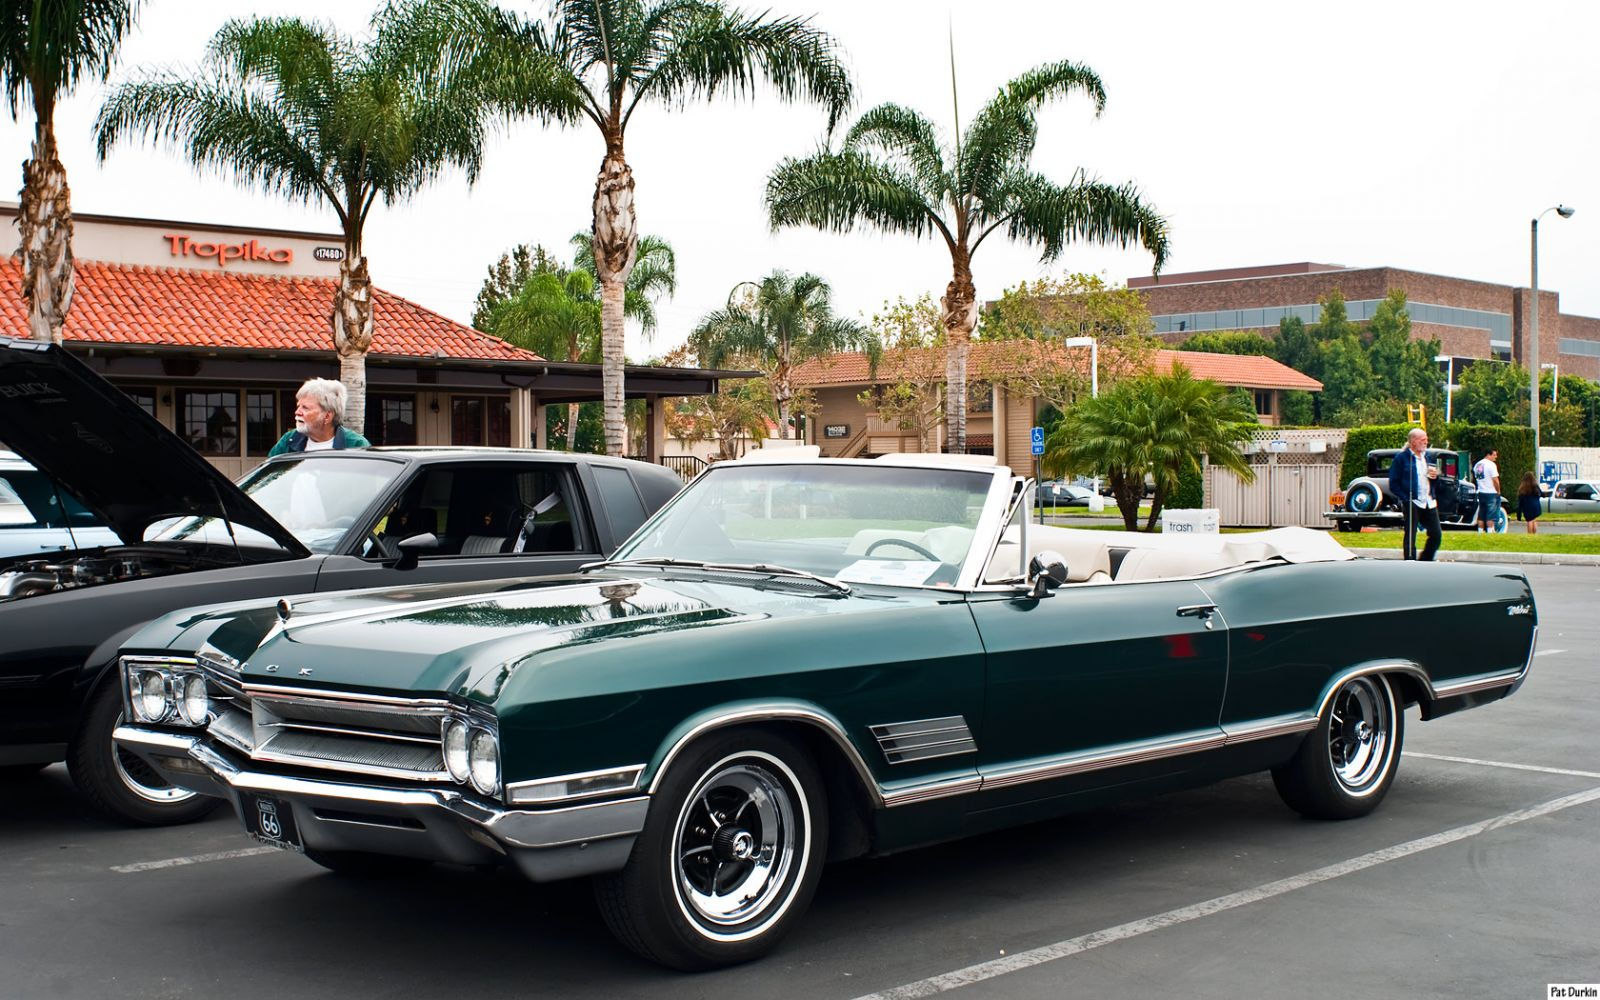 1966 Buick Wildcat convertible with top down - dark green metallic - fvl